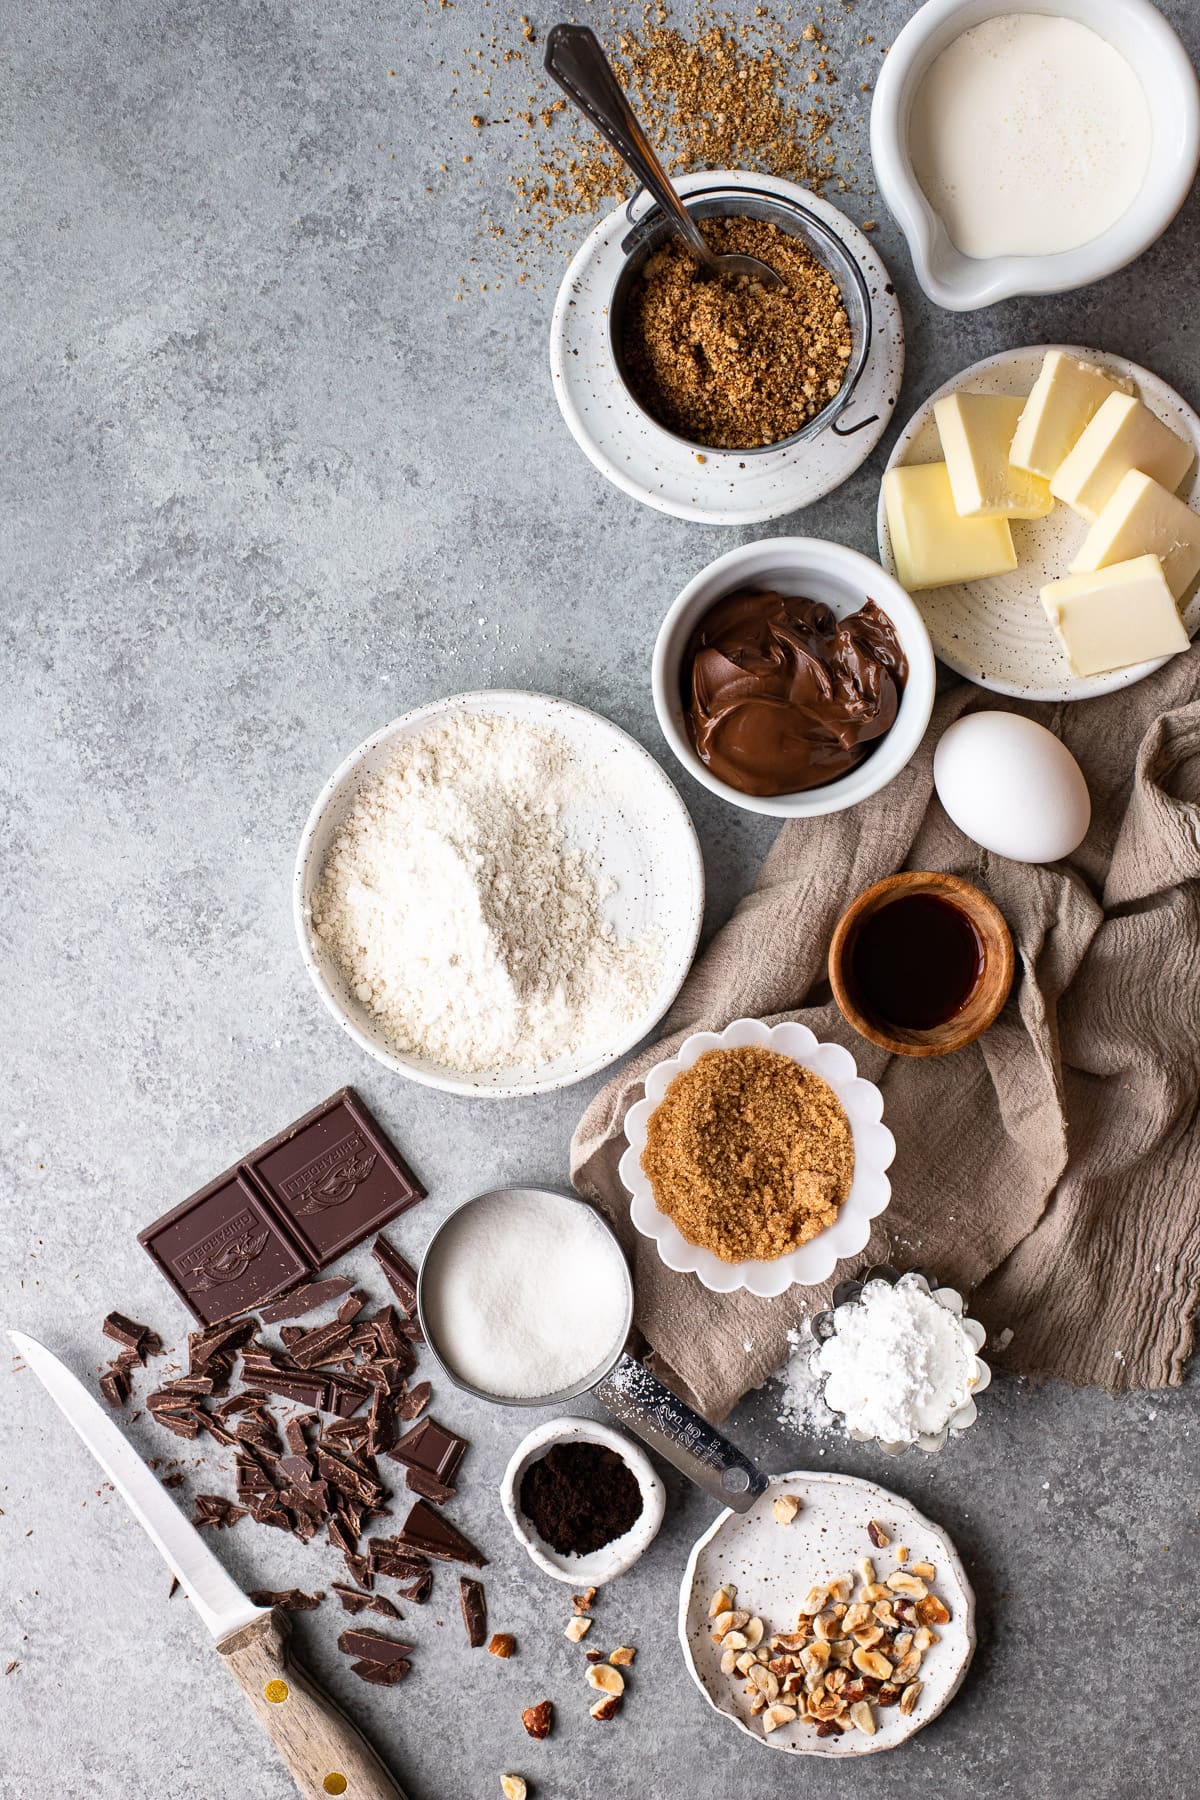 Overhead view of recipe ingredients for Nutella tart.